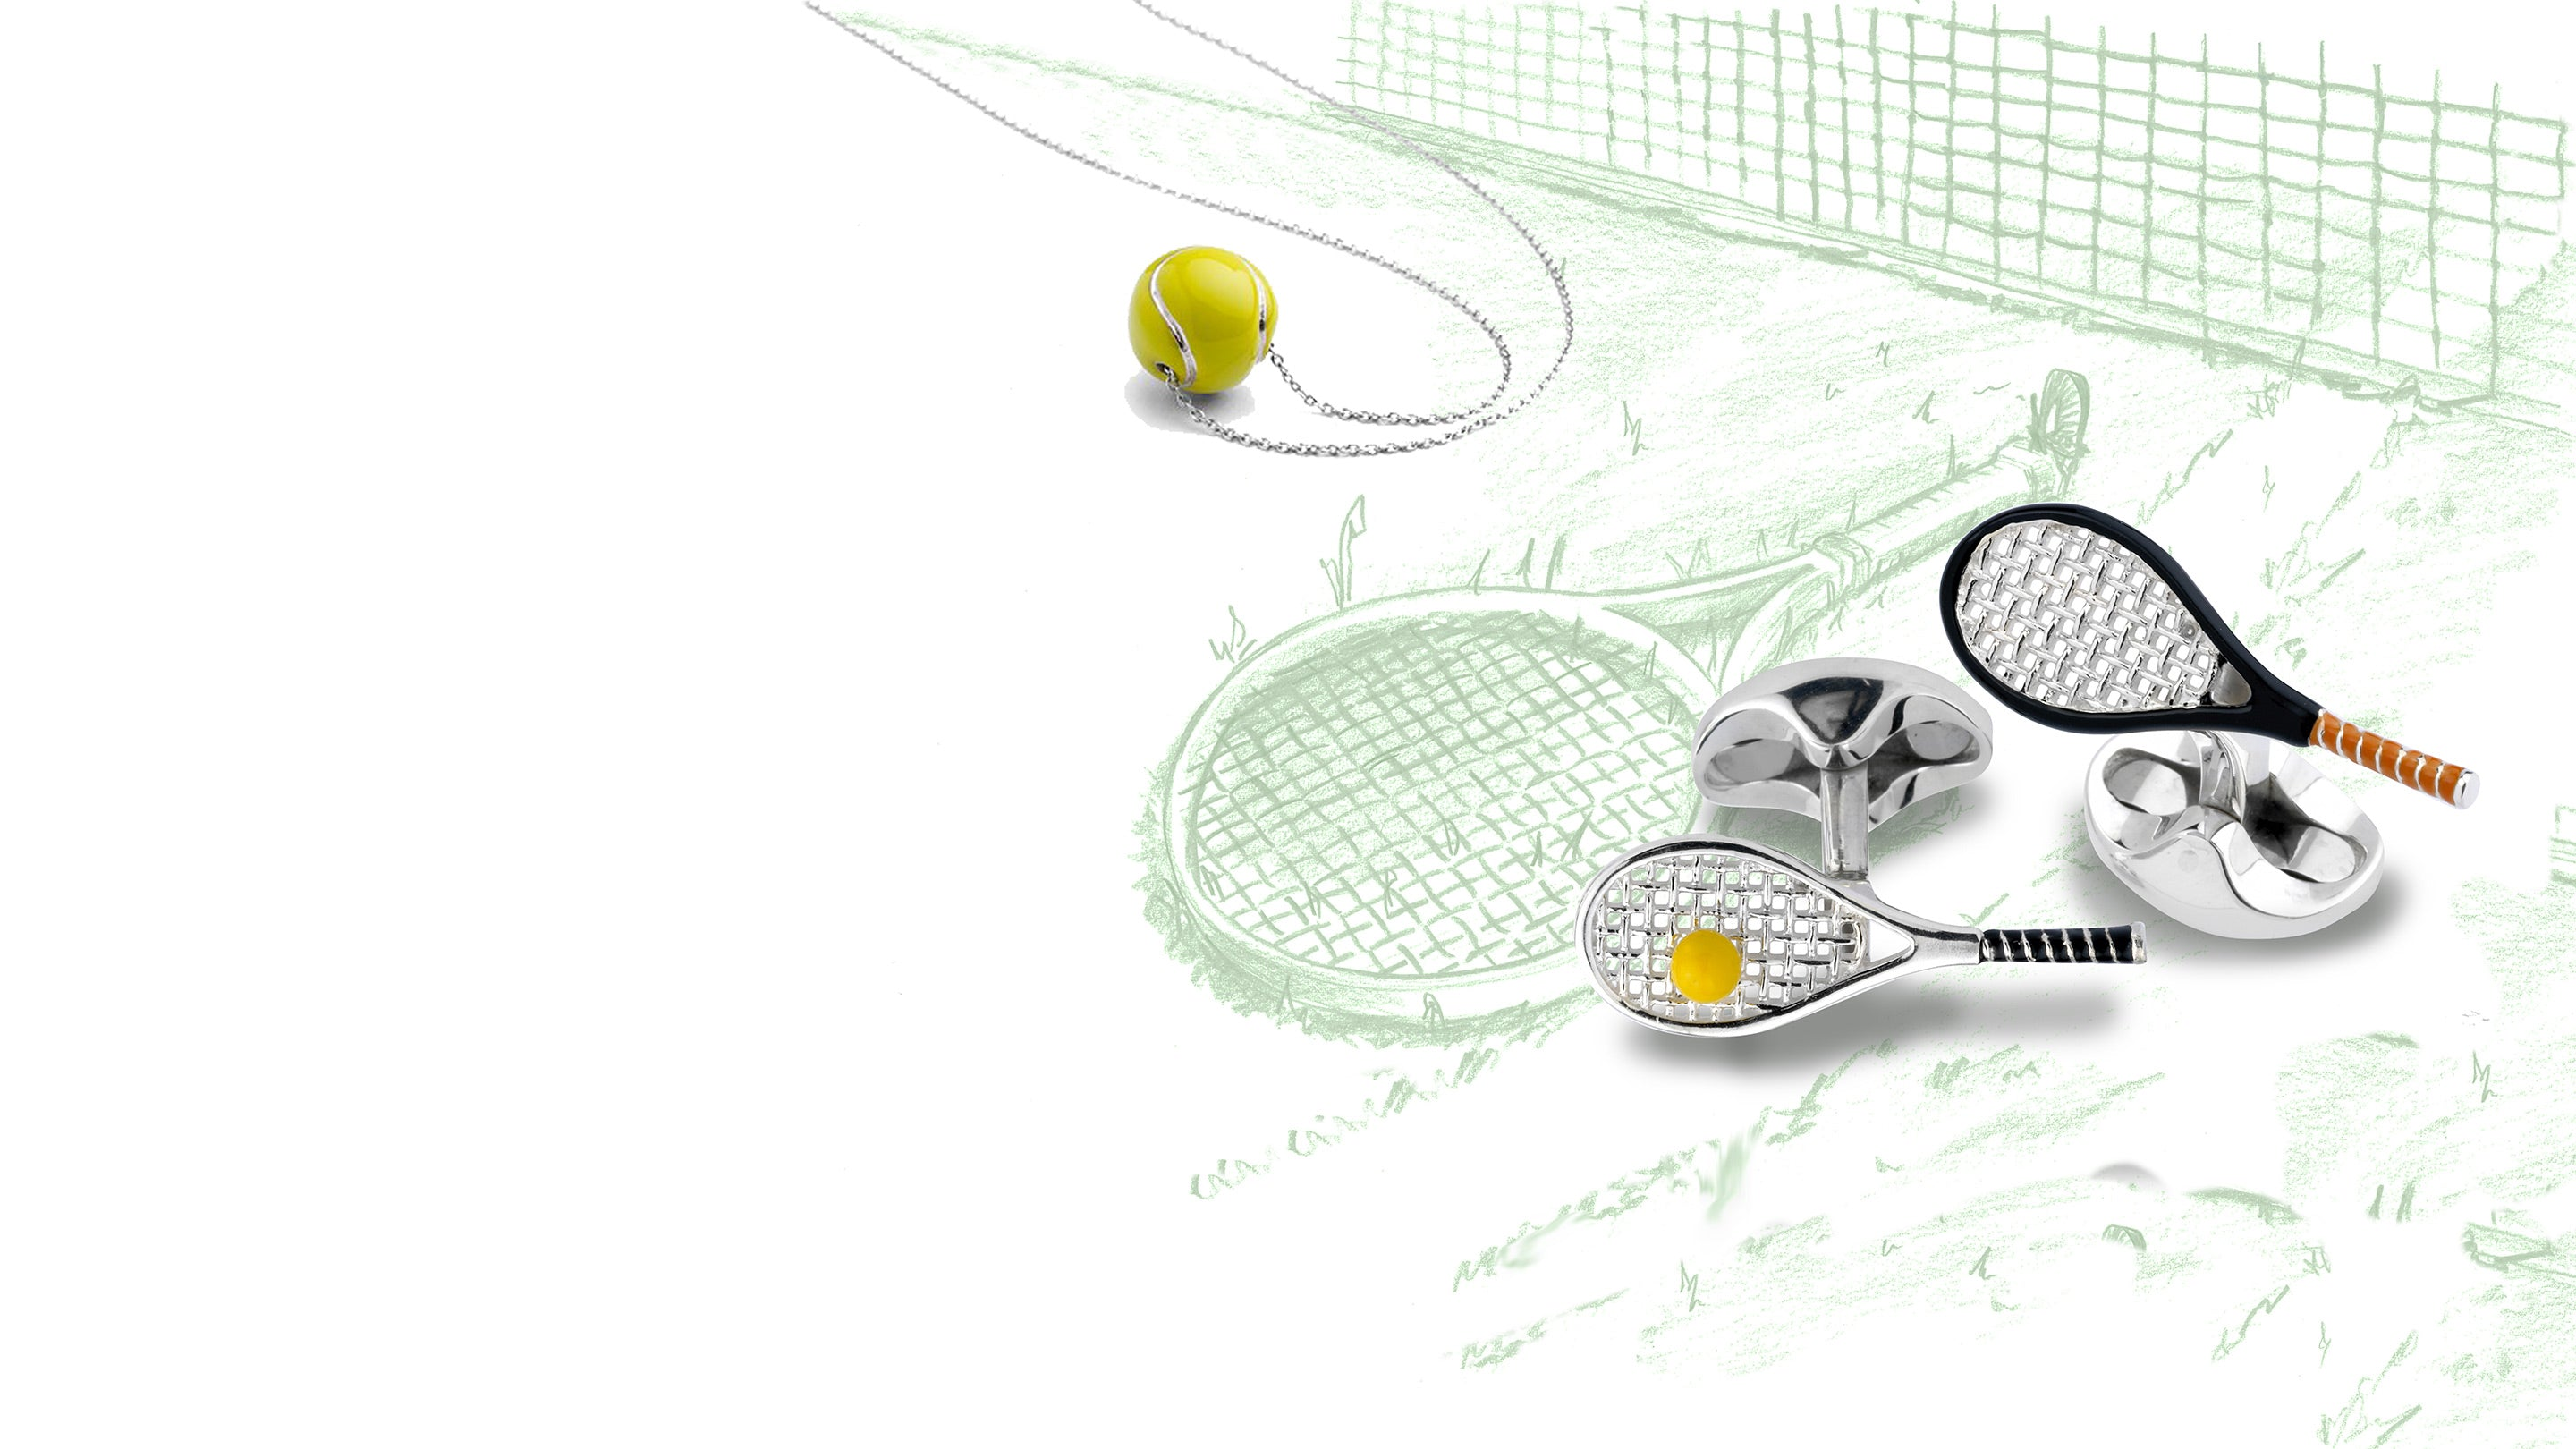 Deakin and Francis tennis racket and ball cufflinks